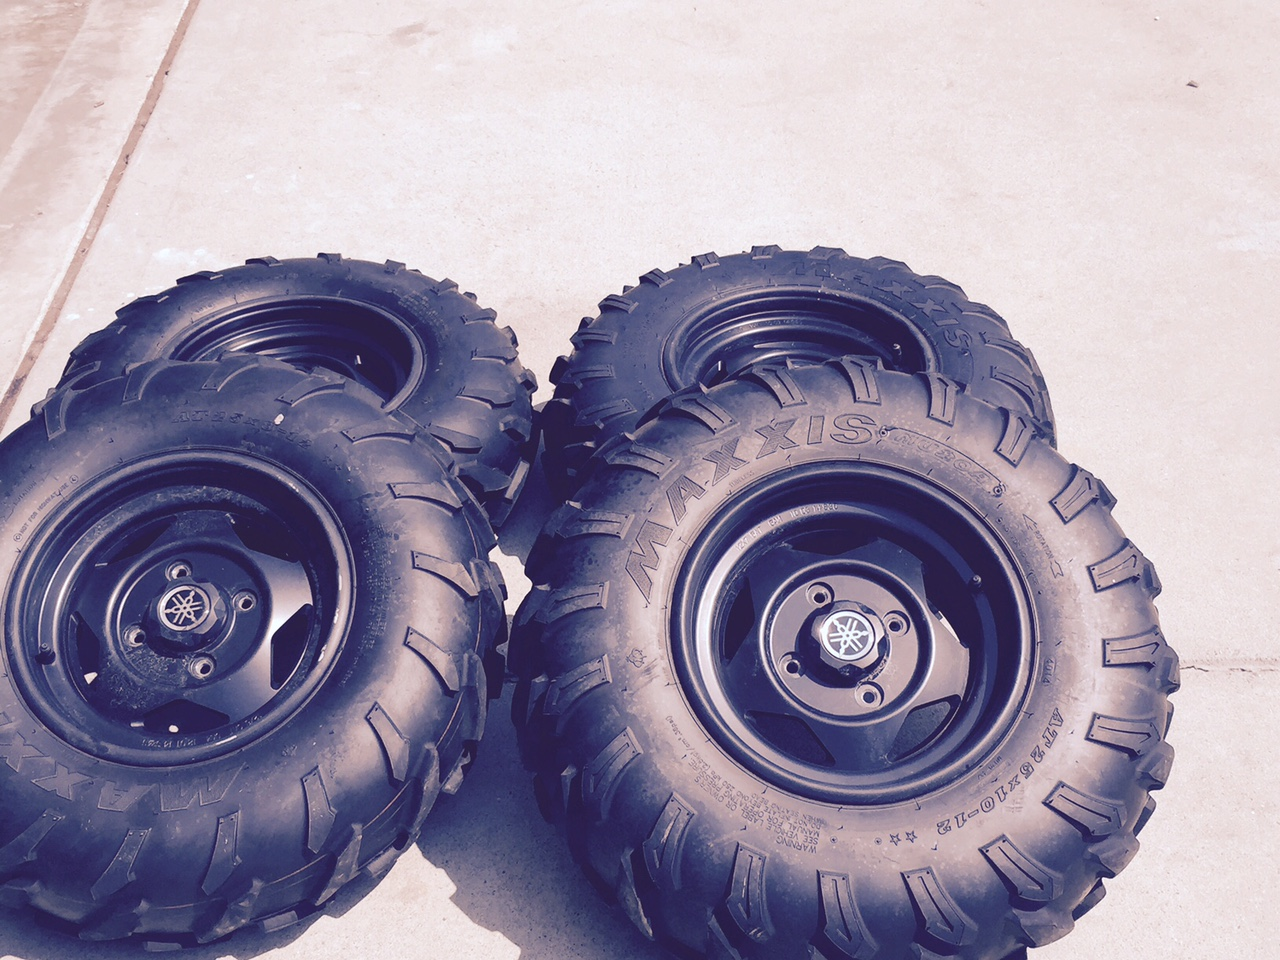 Grizzly 700 Tires Rims